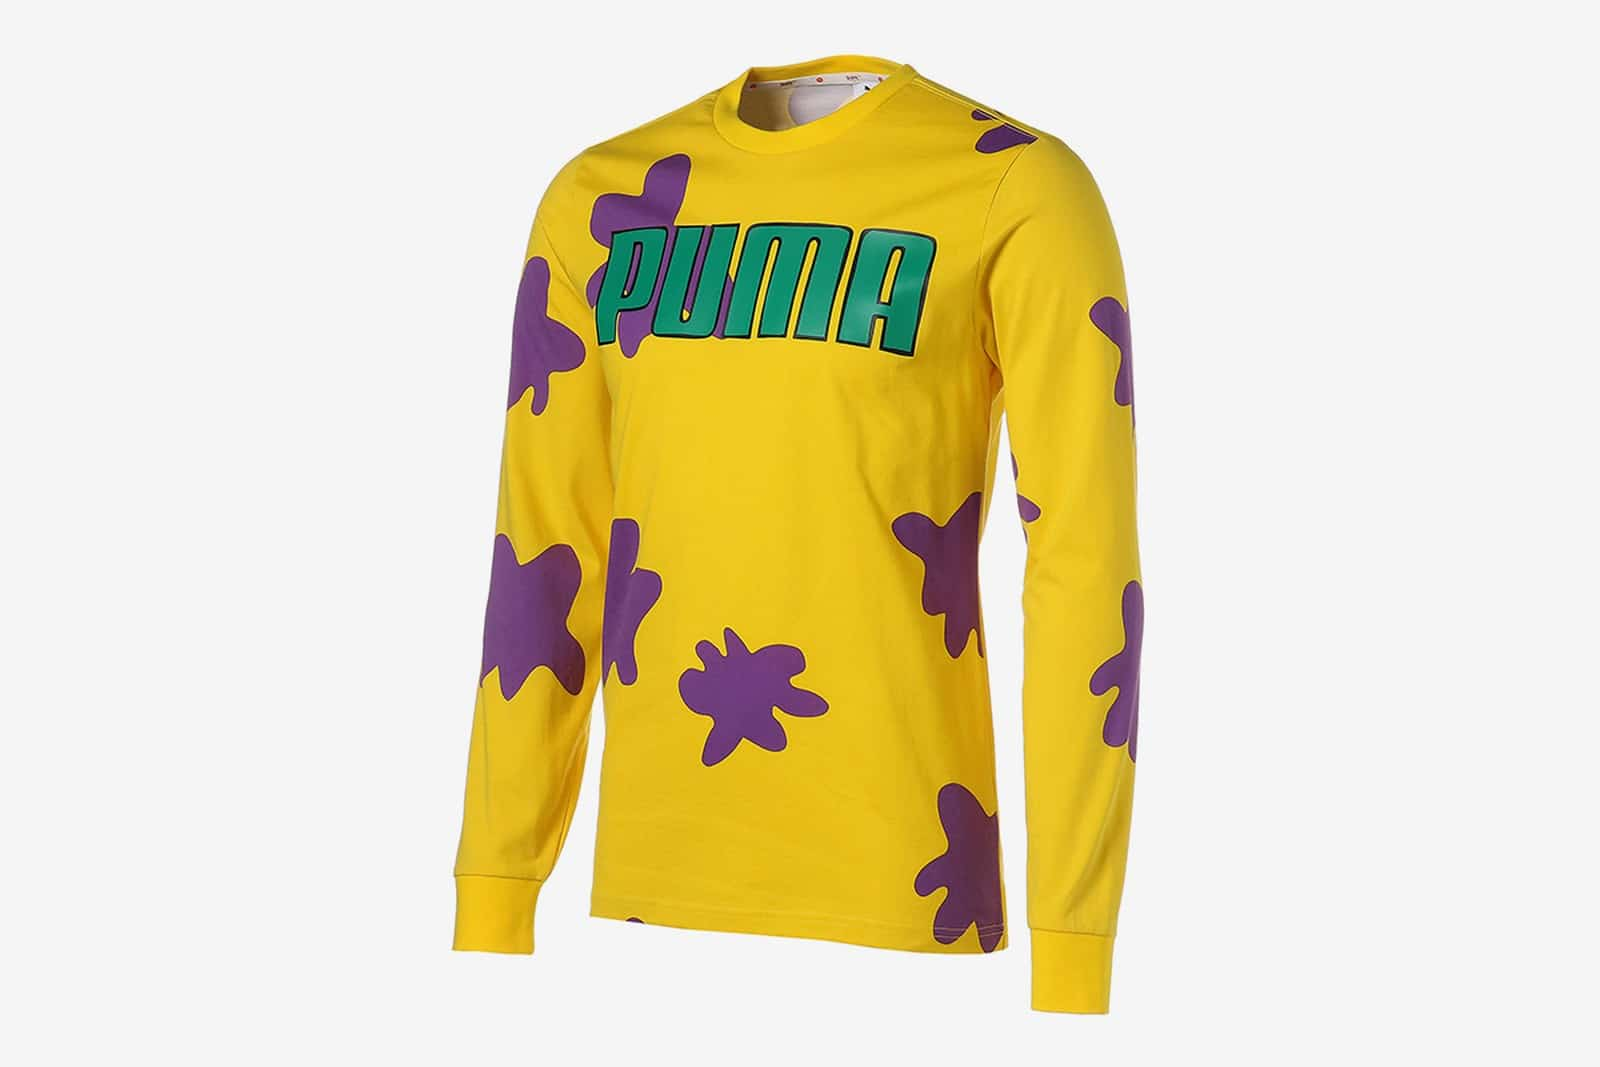 The Puma x Rugrats collection is available now and it's full of '90s nostalgia 20